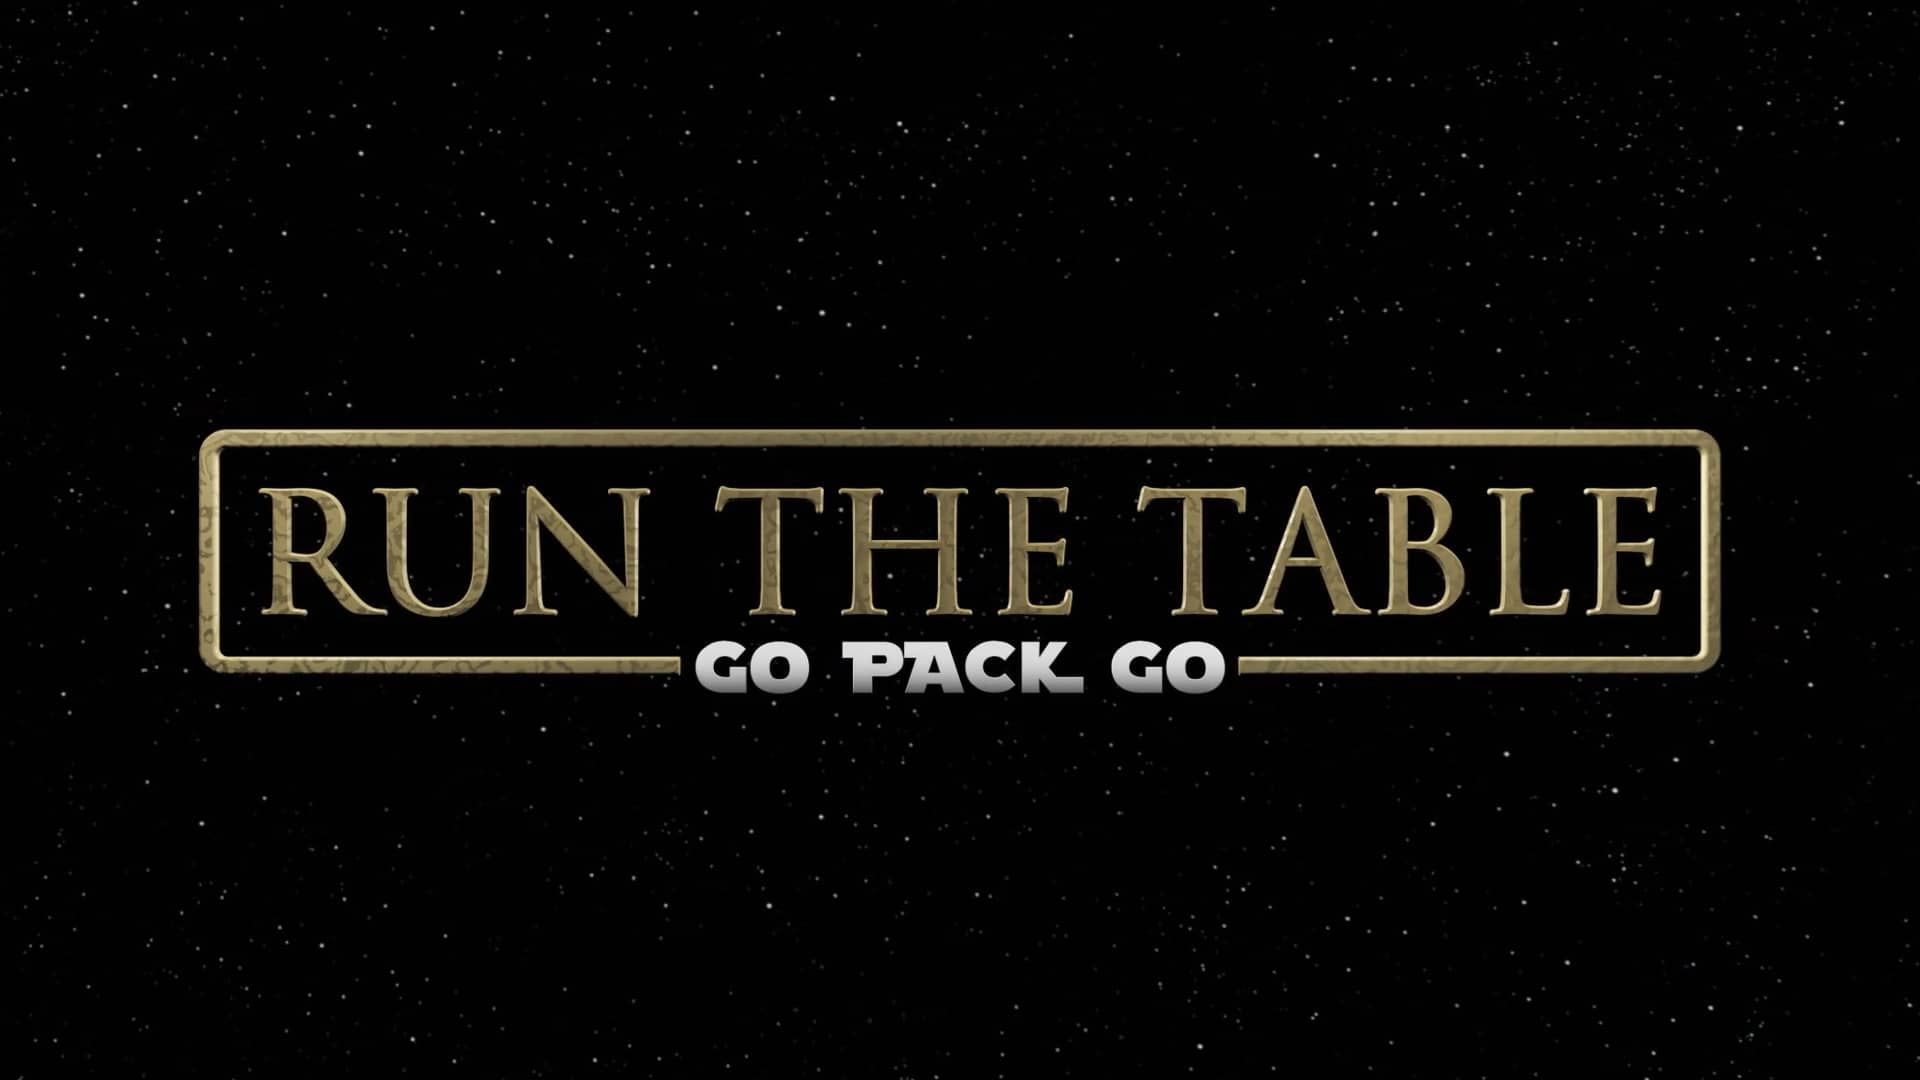 RUN THE TABLE Go Pack Go (With images) Green bay